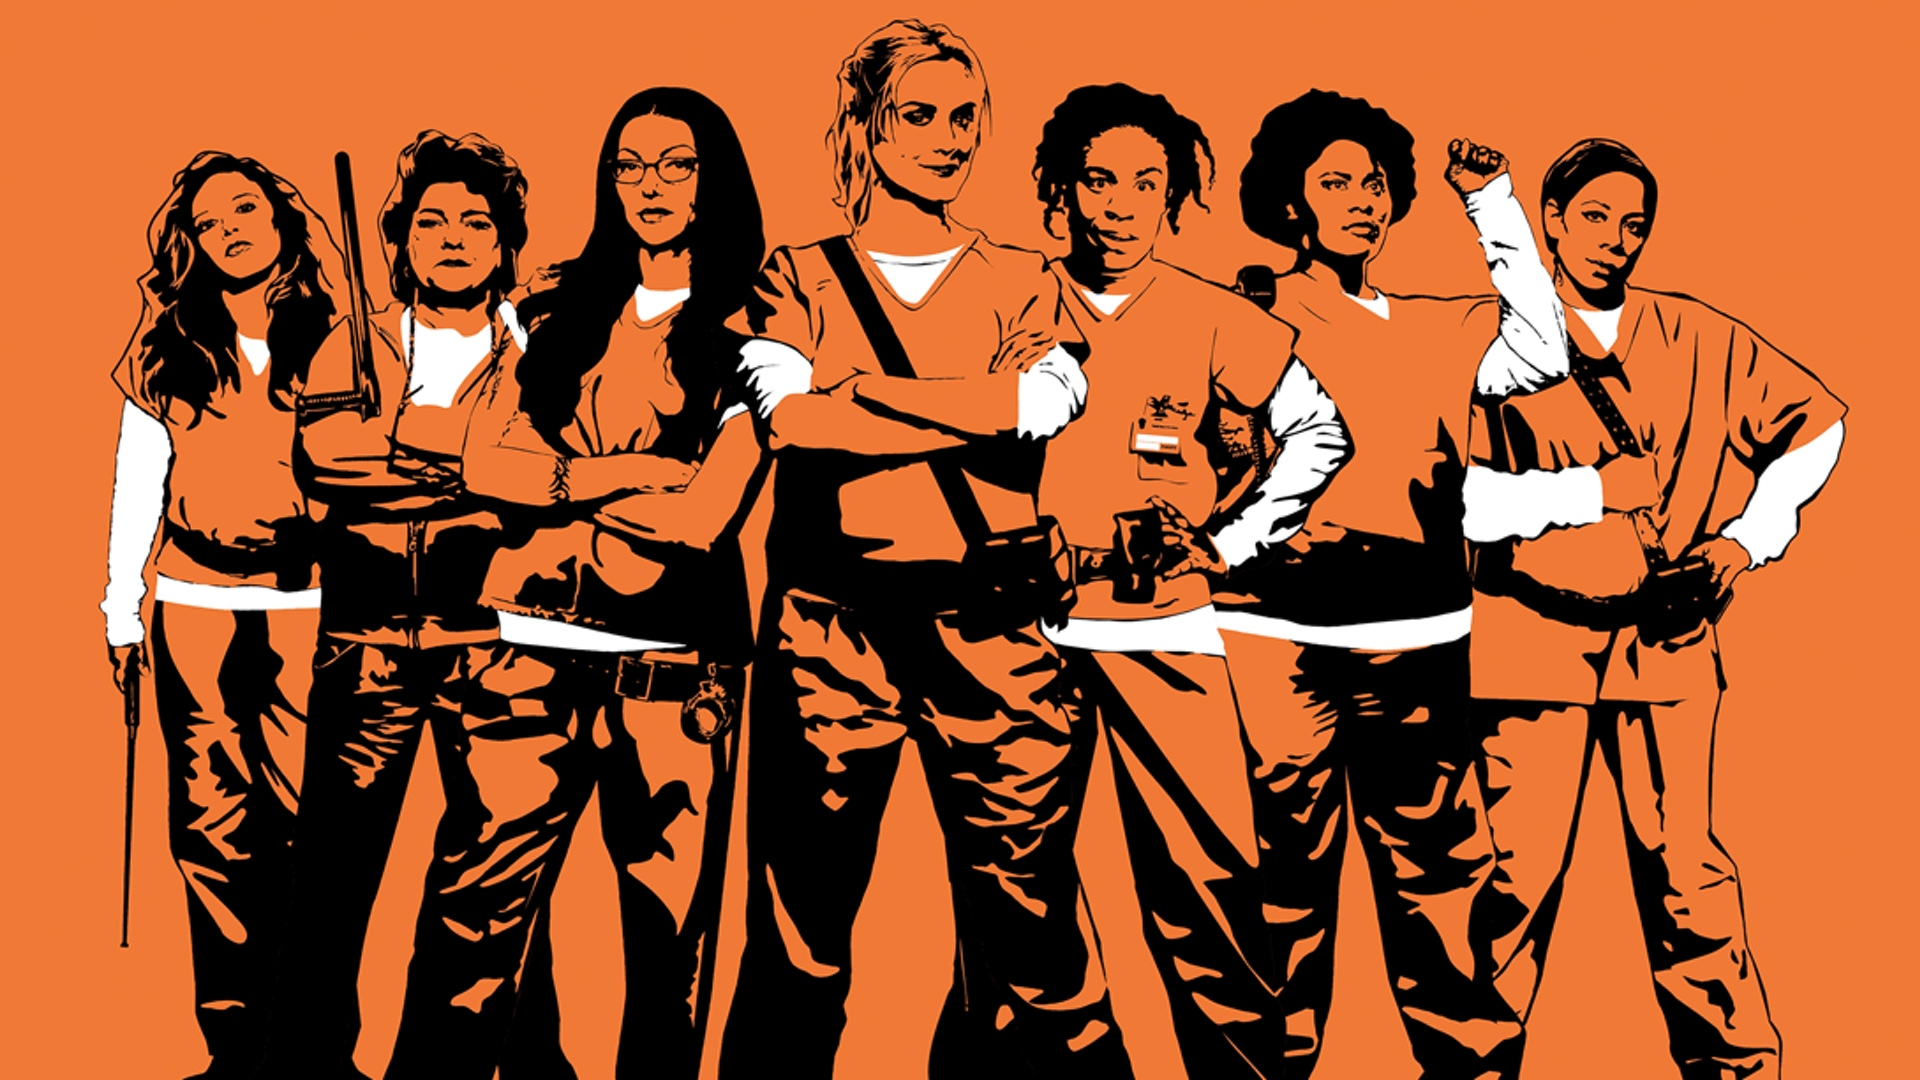 orange is the new black season 6 Direct Download 480p 720p